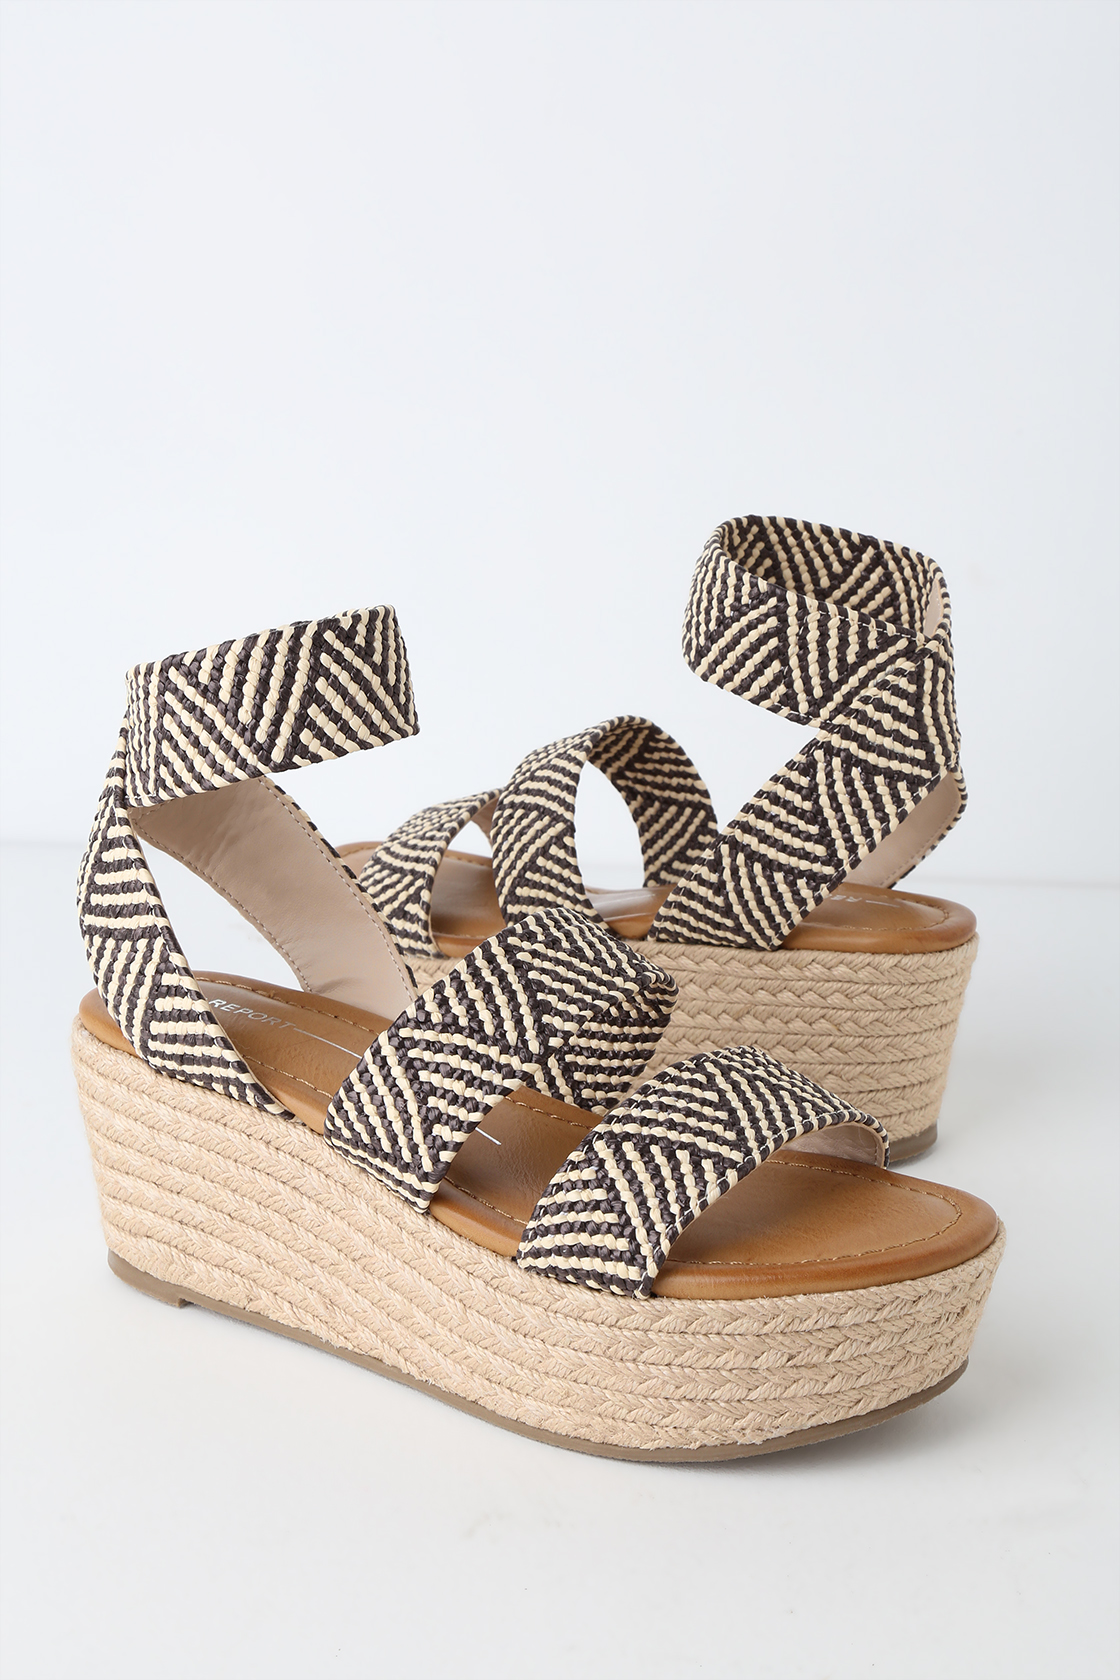 a2821a30ad4 Espadrille Shoes: 15 Stylish Women's Espadrilles for Any Occasion or ...